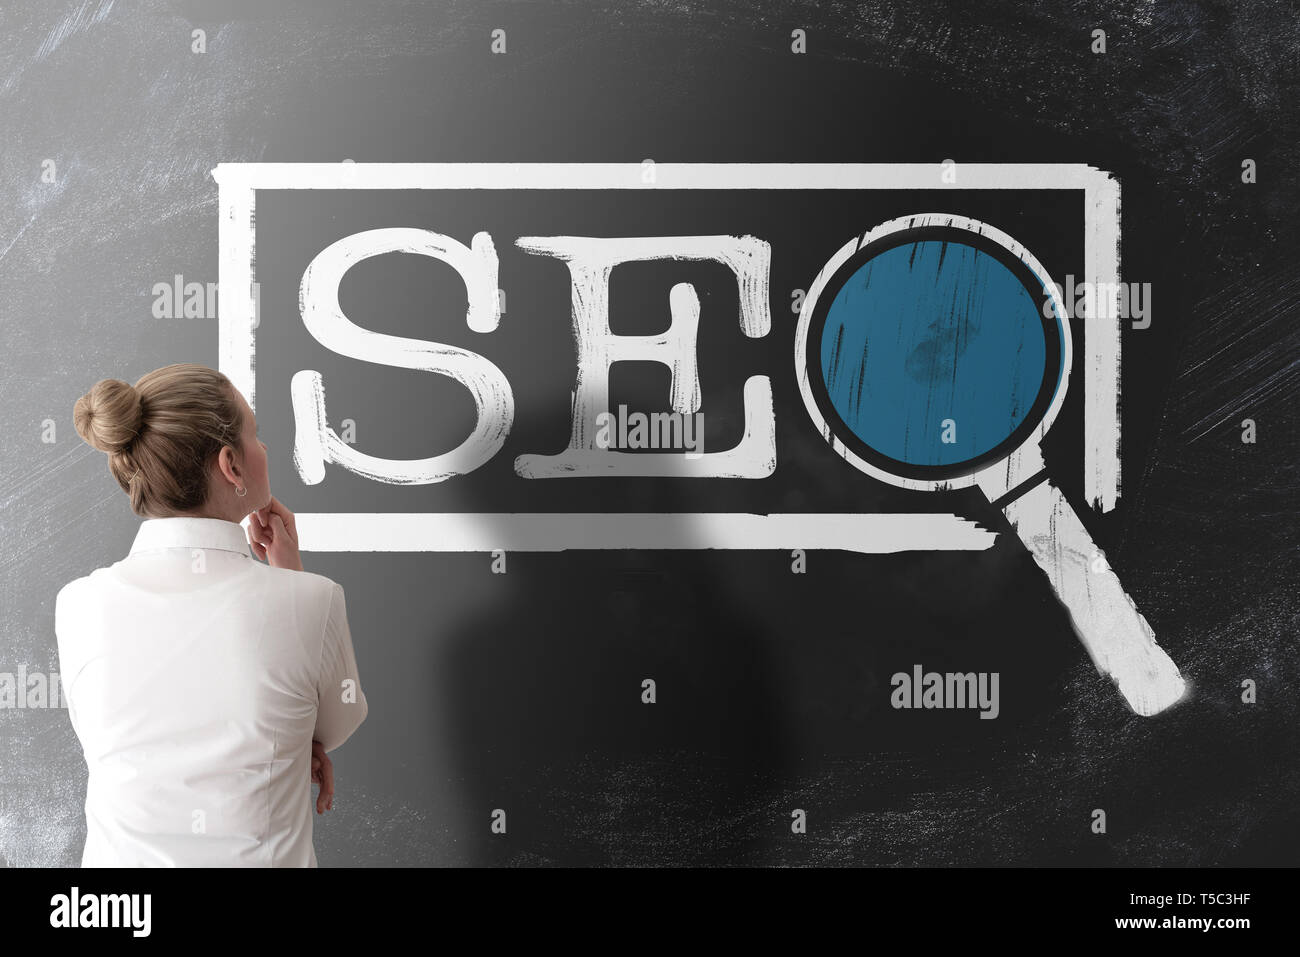 rear view of woman in white blouse looking at term SEO, search engine optimization,  on chalkboard Stock Photo